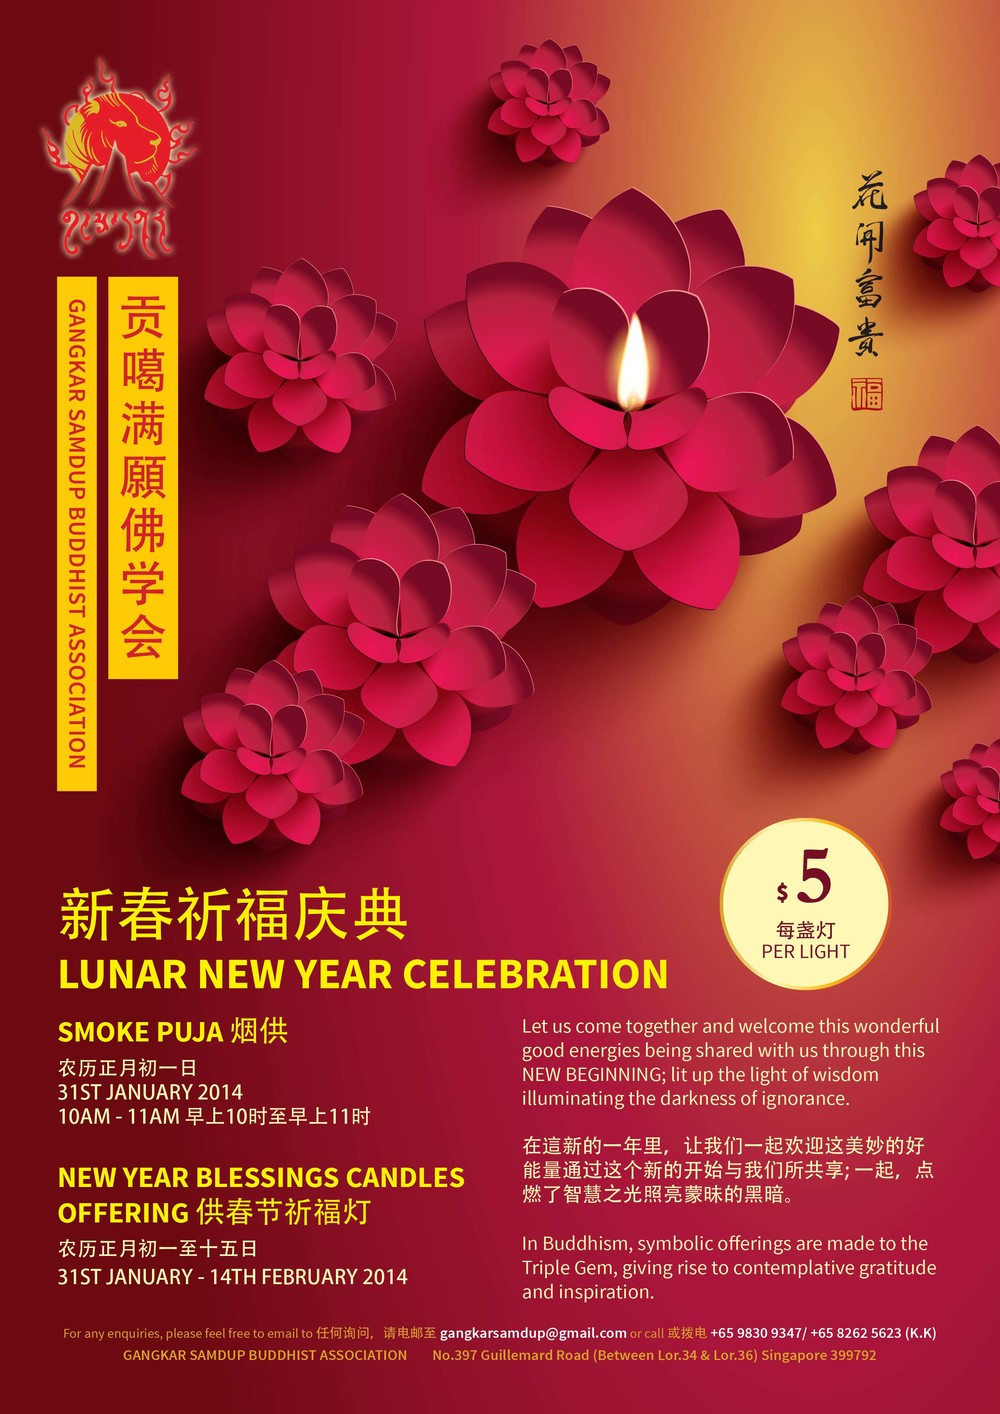 Lunar New Year Celebration - Welcome all to join us.